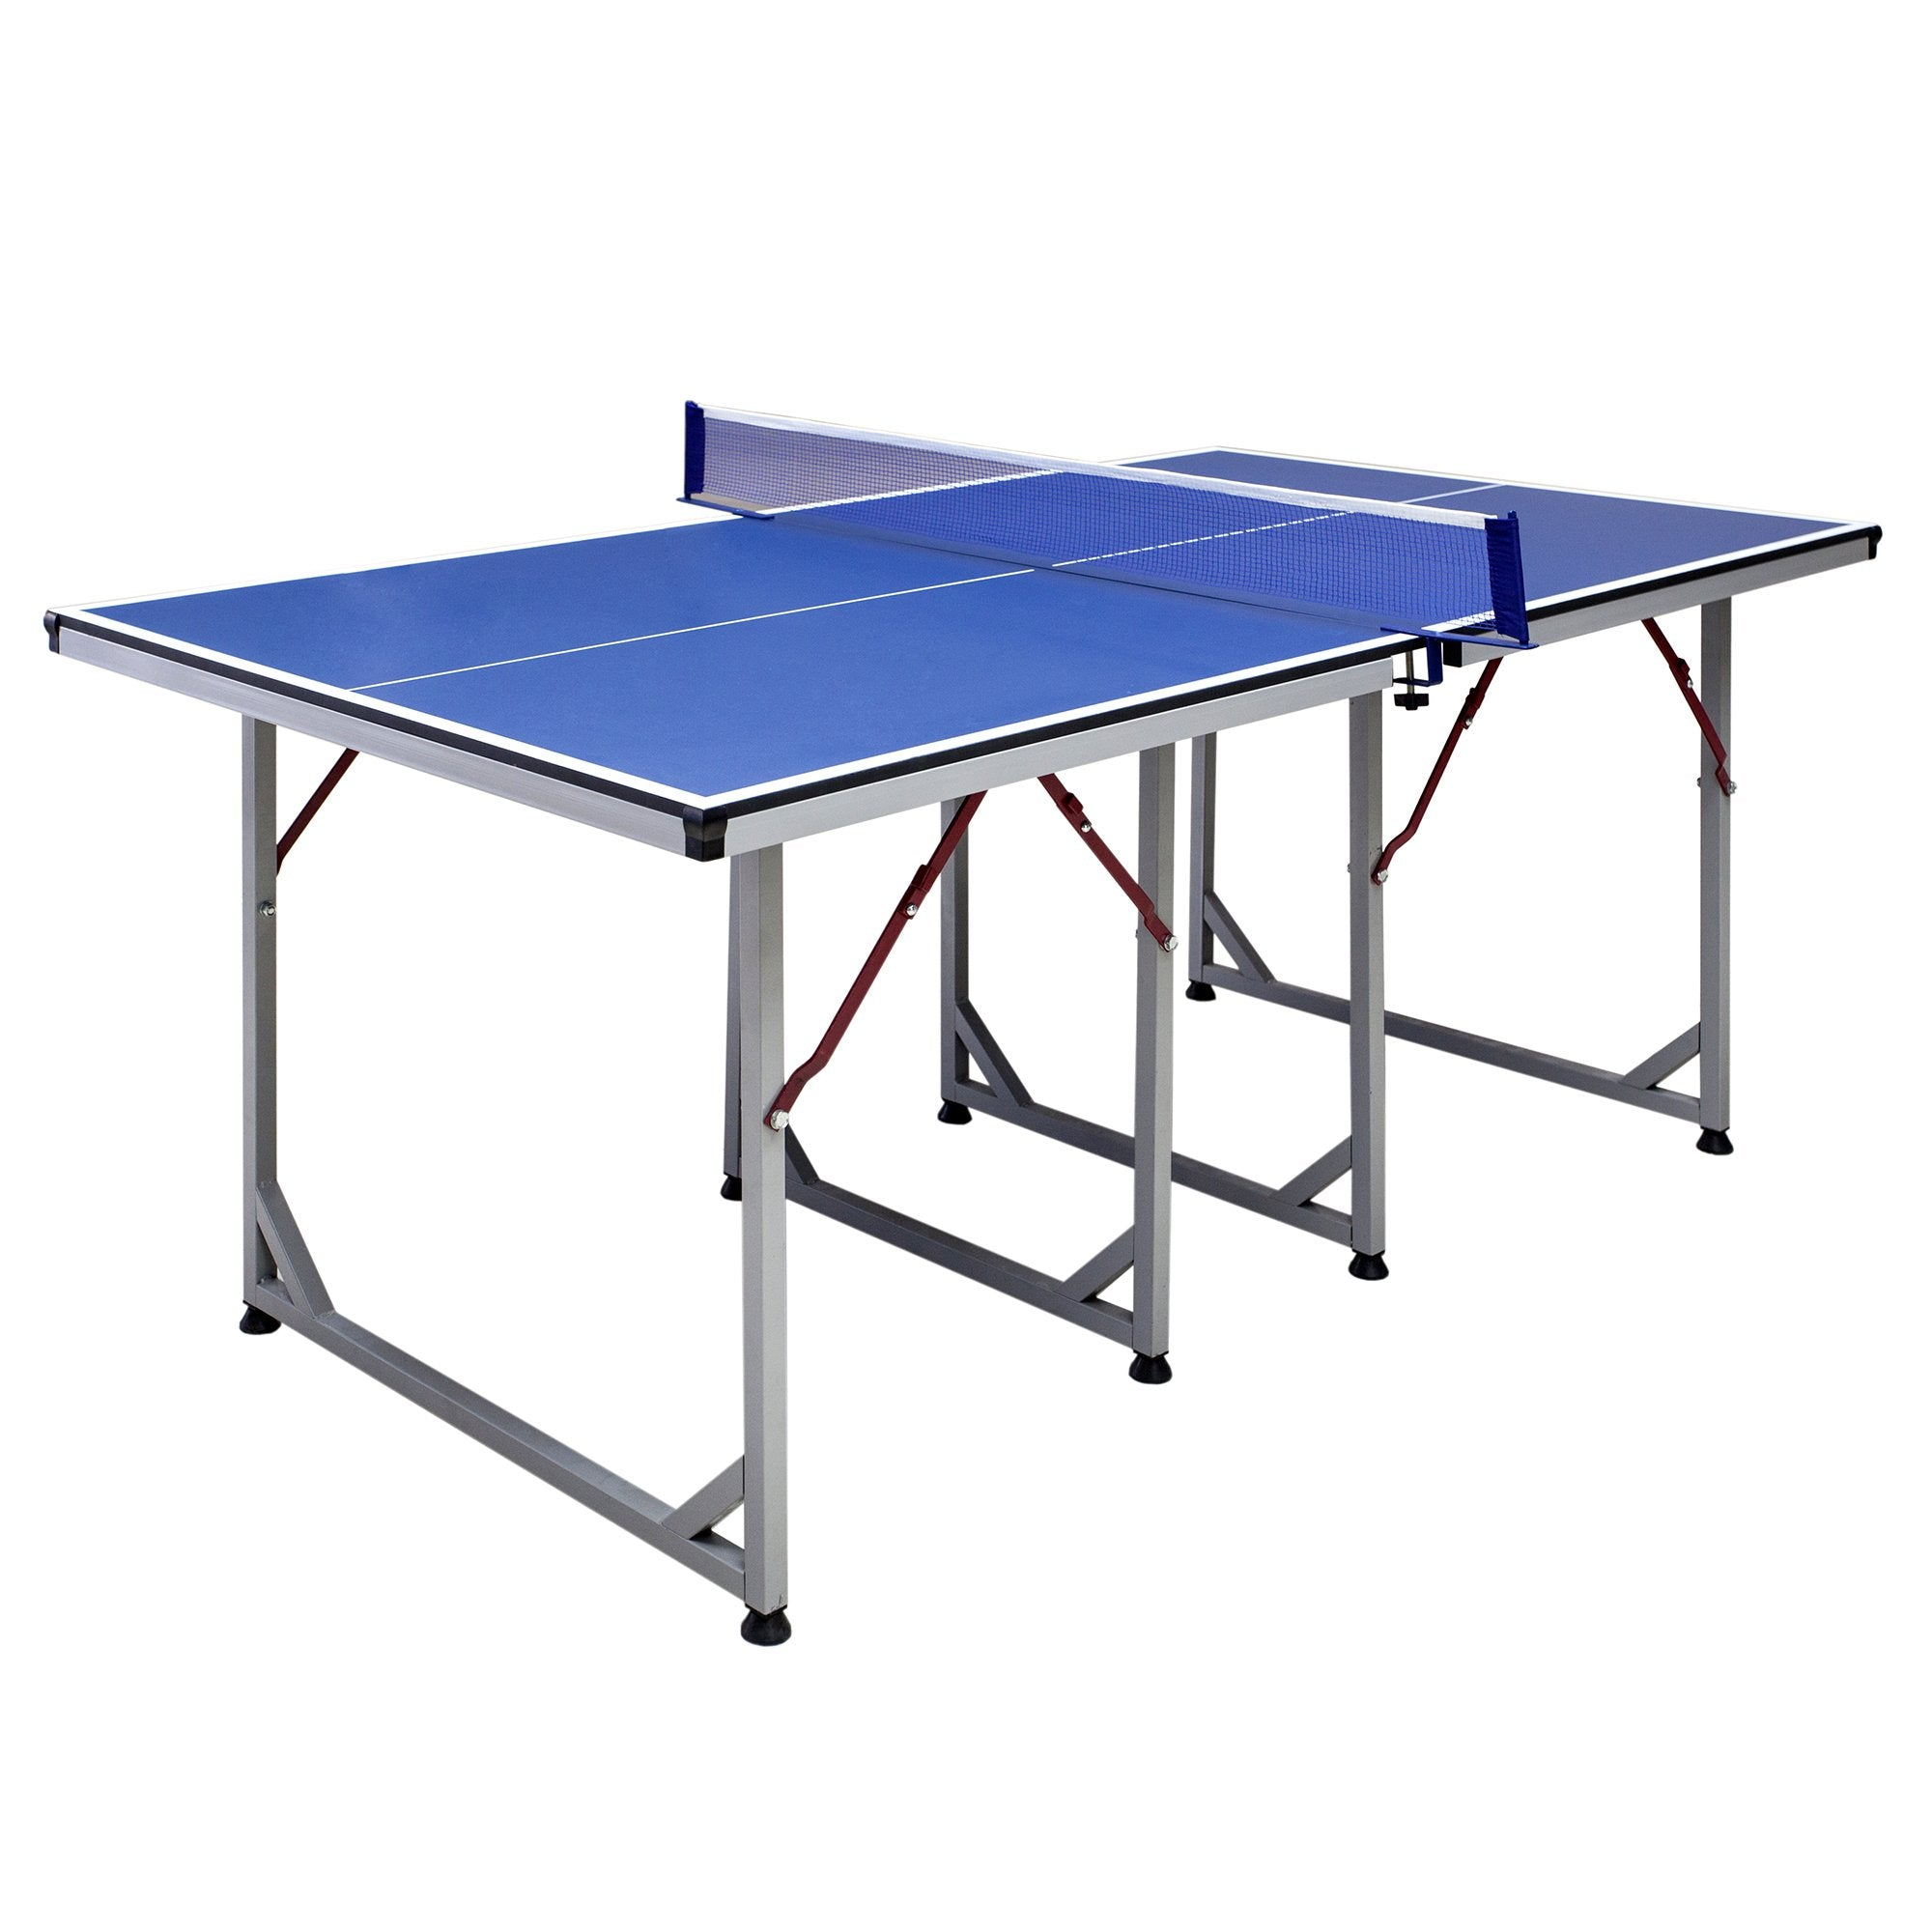 Hathaway Reflex 6ft Ping Pong Table Mid-sized - Gaming Blaze